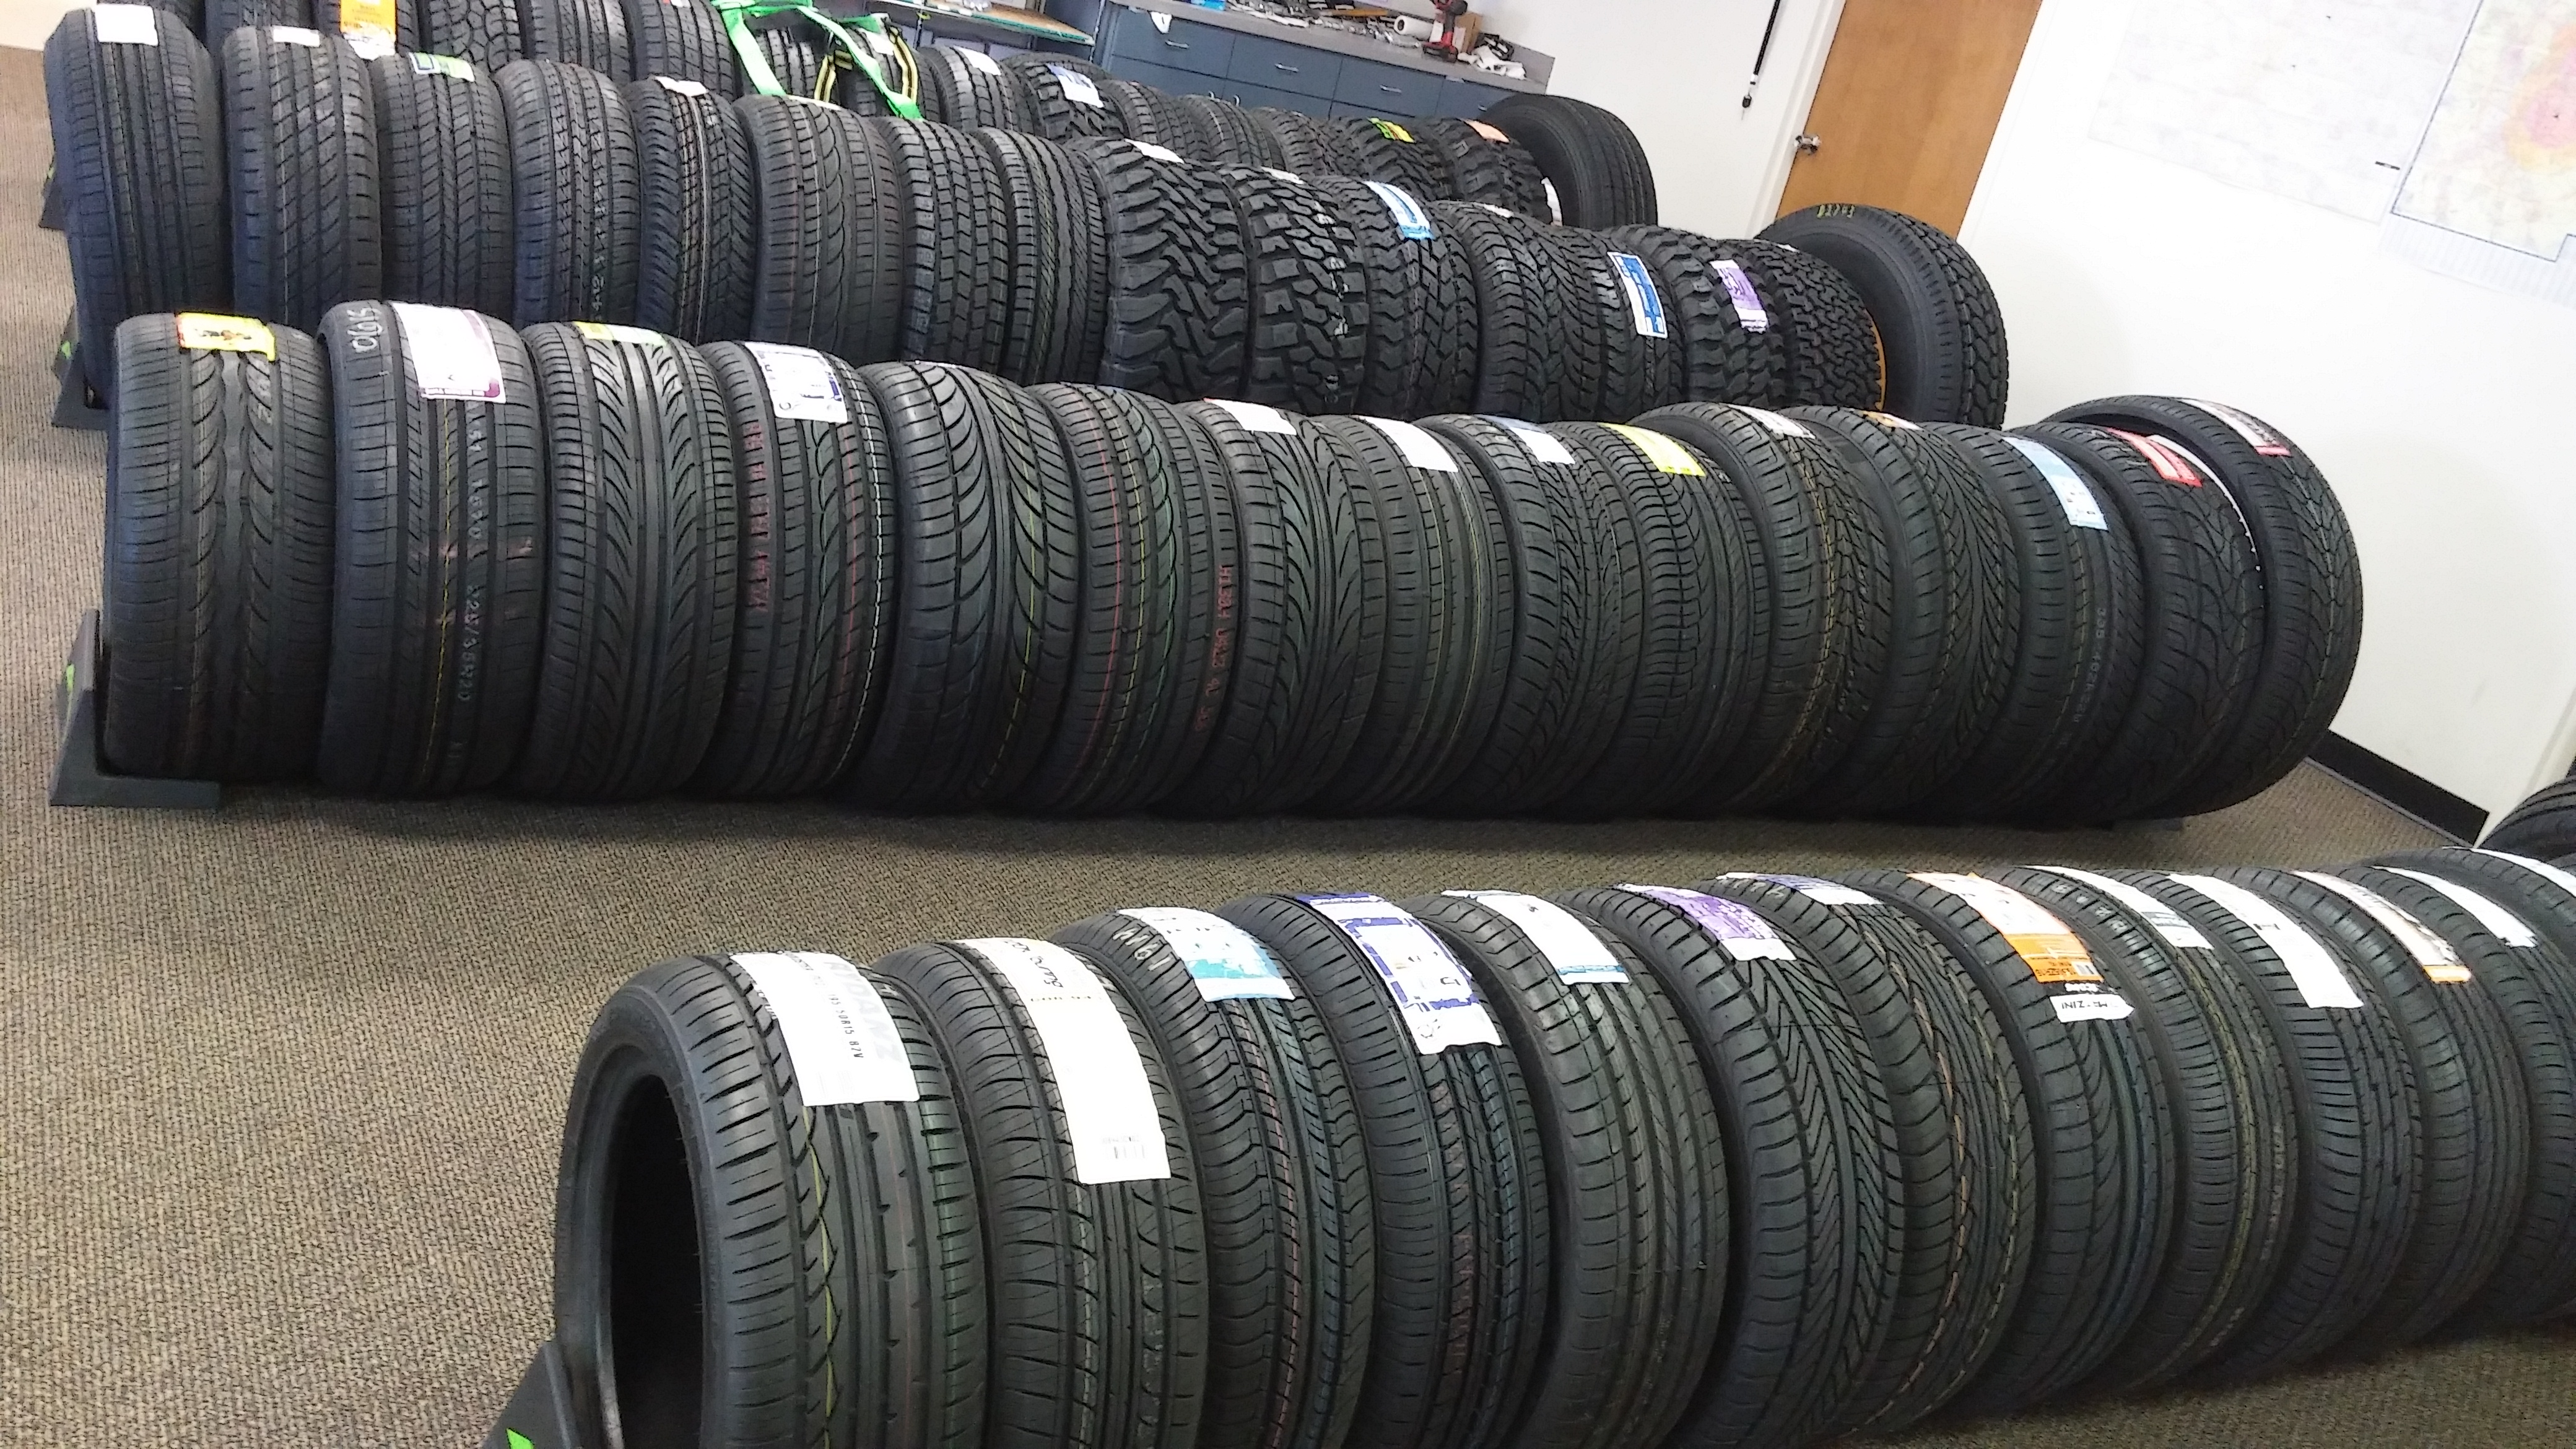 New tires sales, service and repair